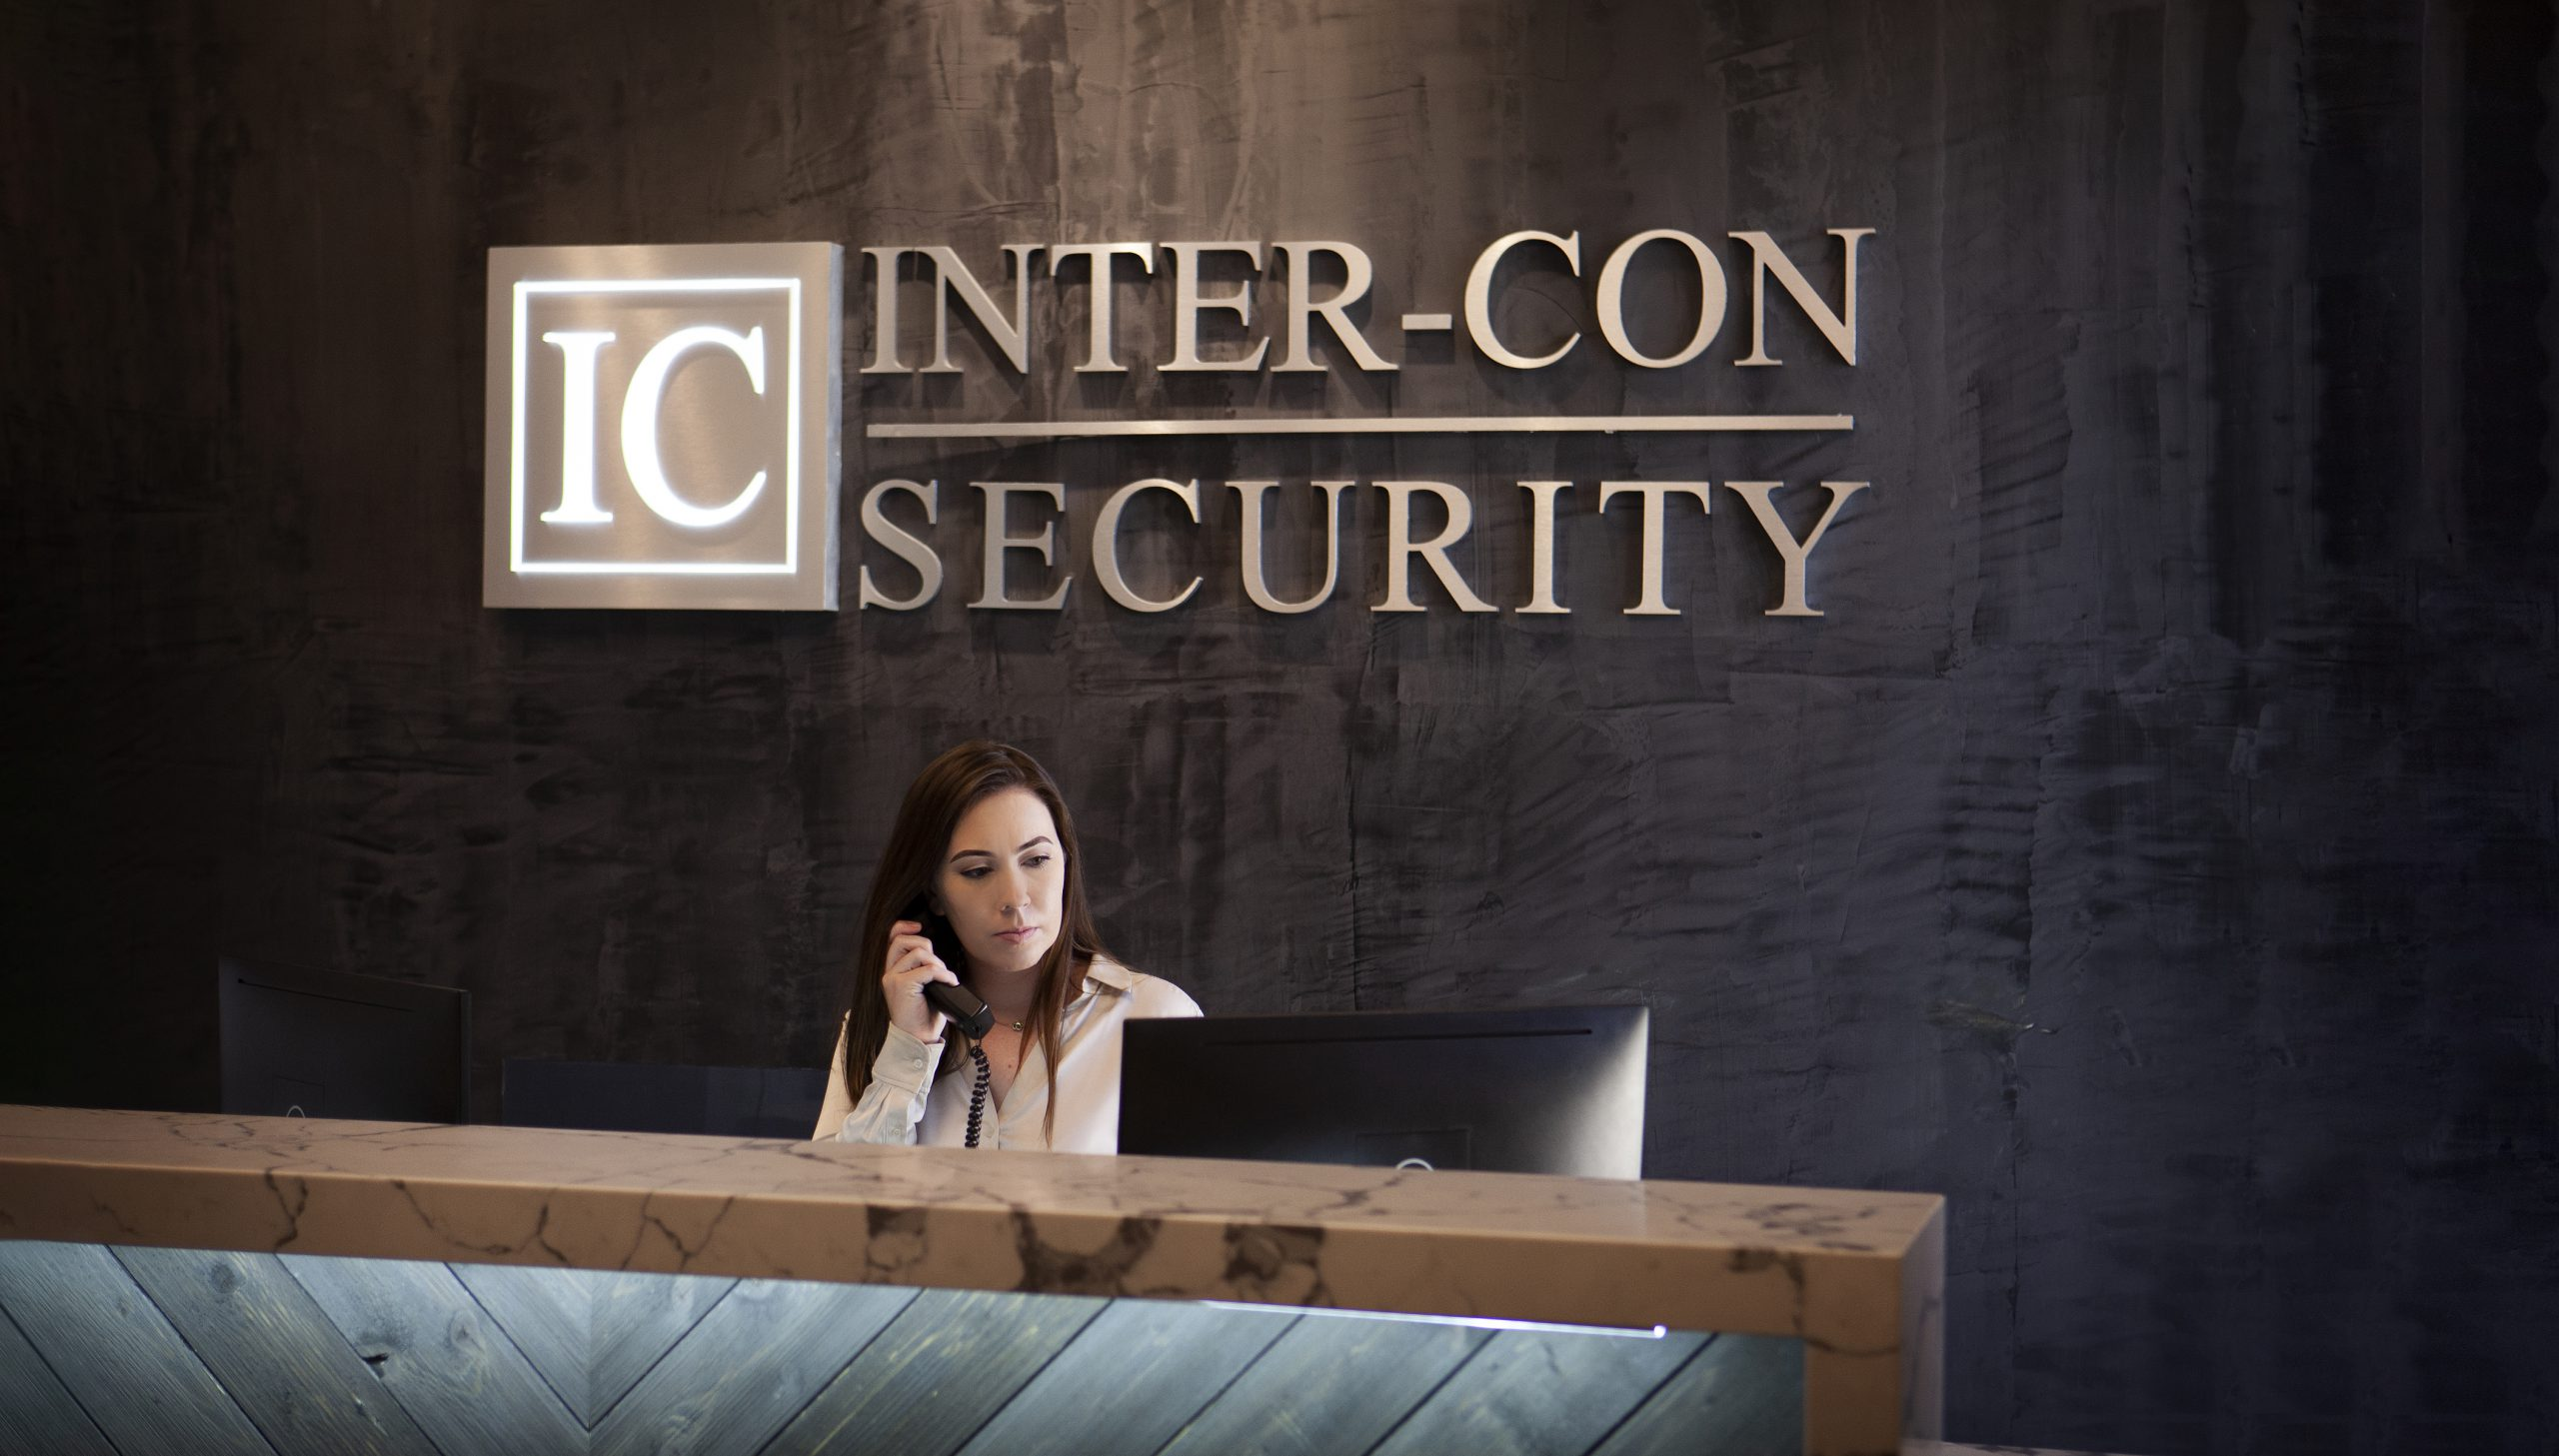 Concierge receptionist with phone sitting behind desk at inter-con security building